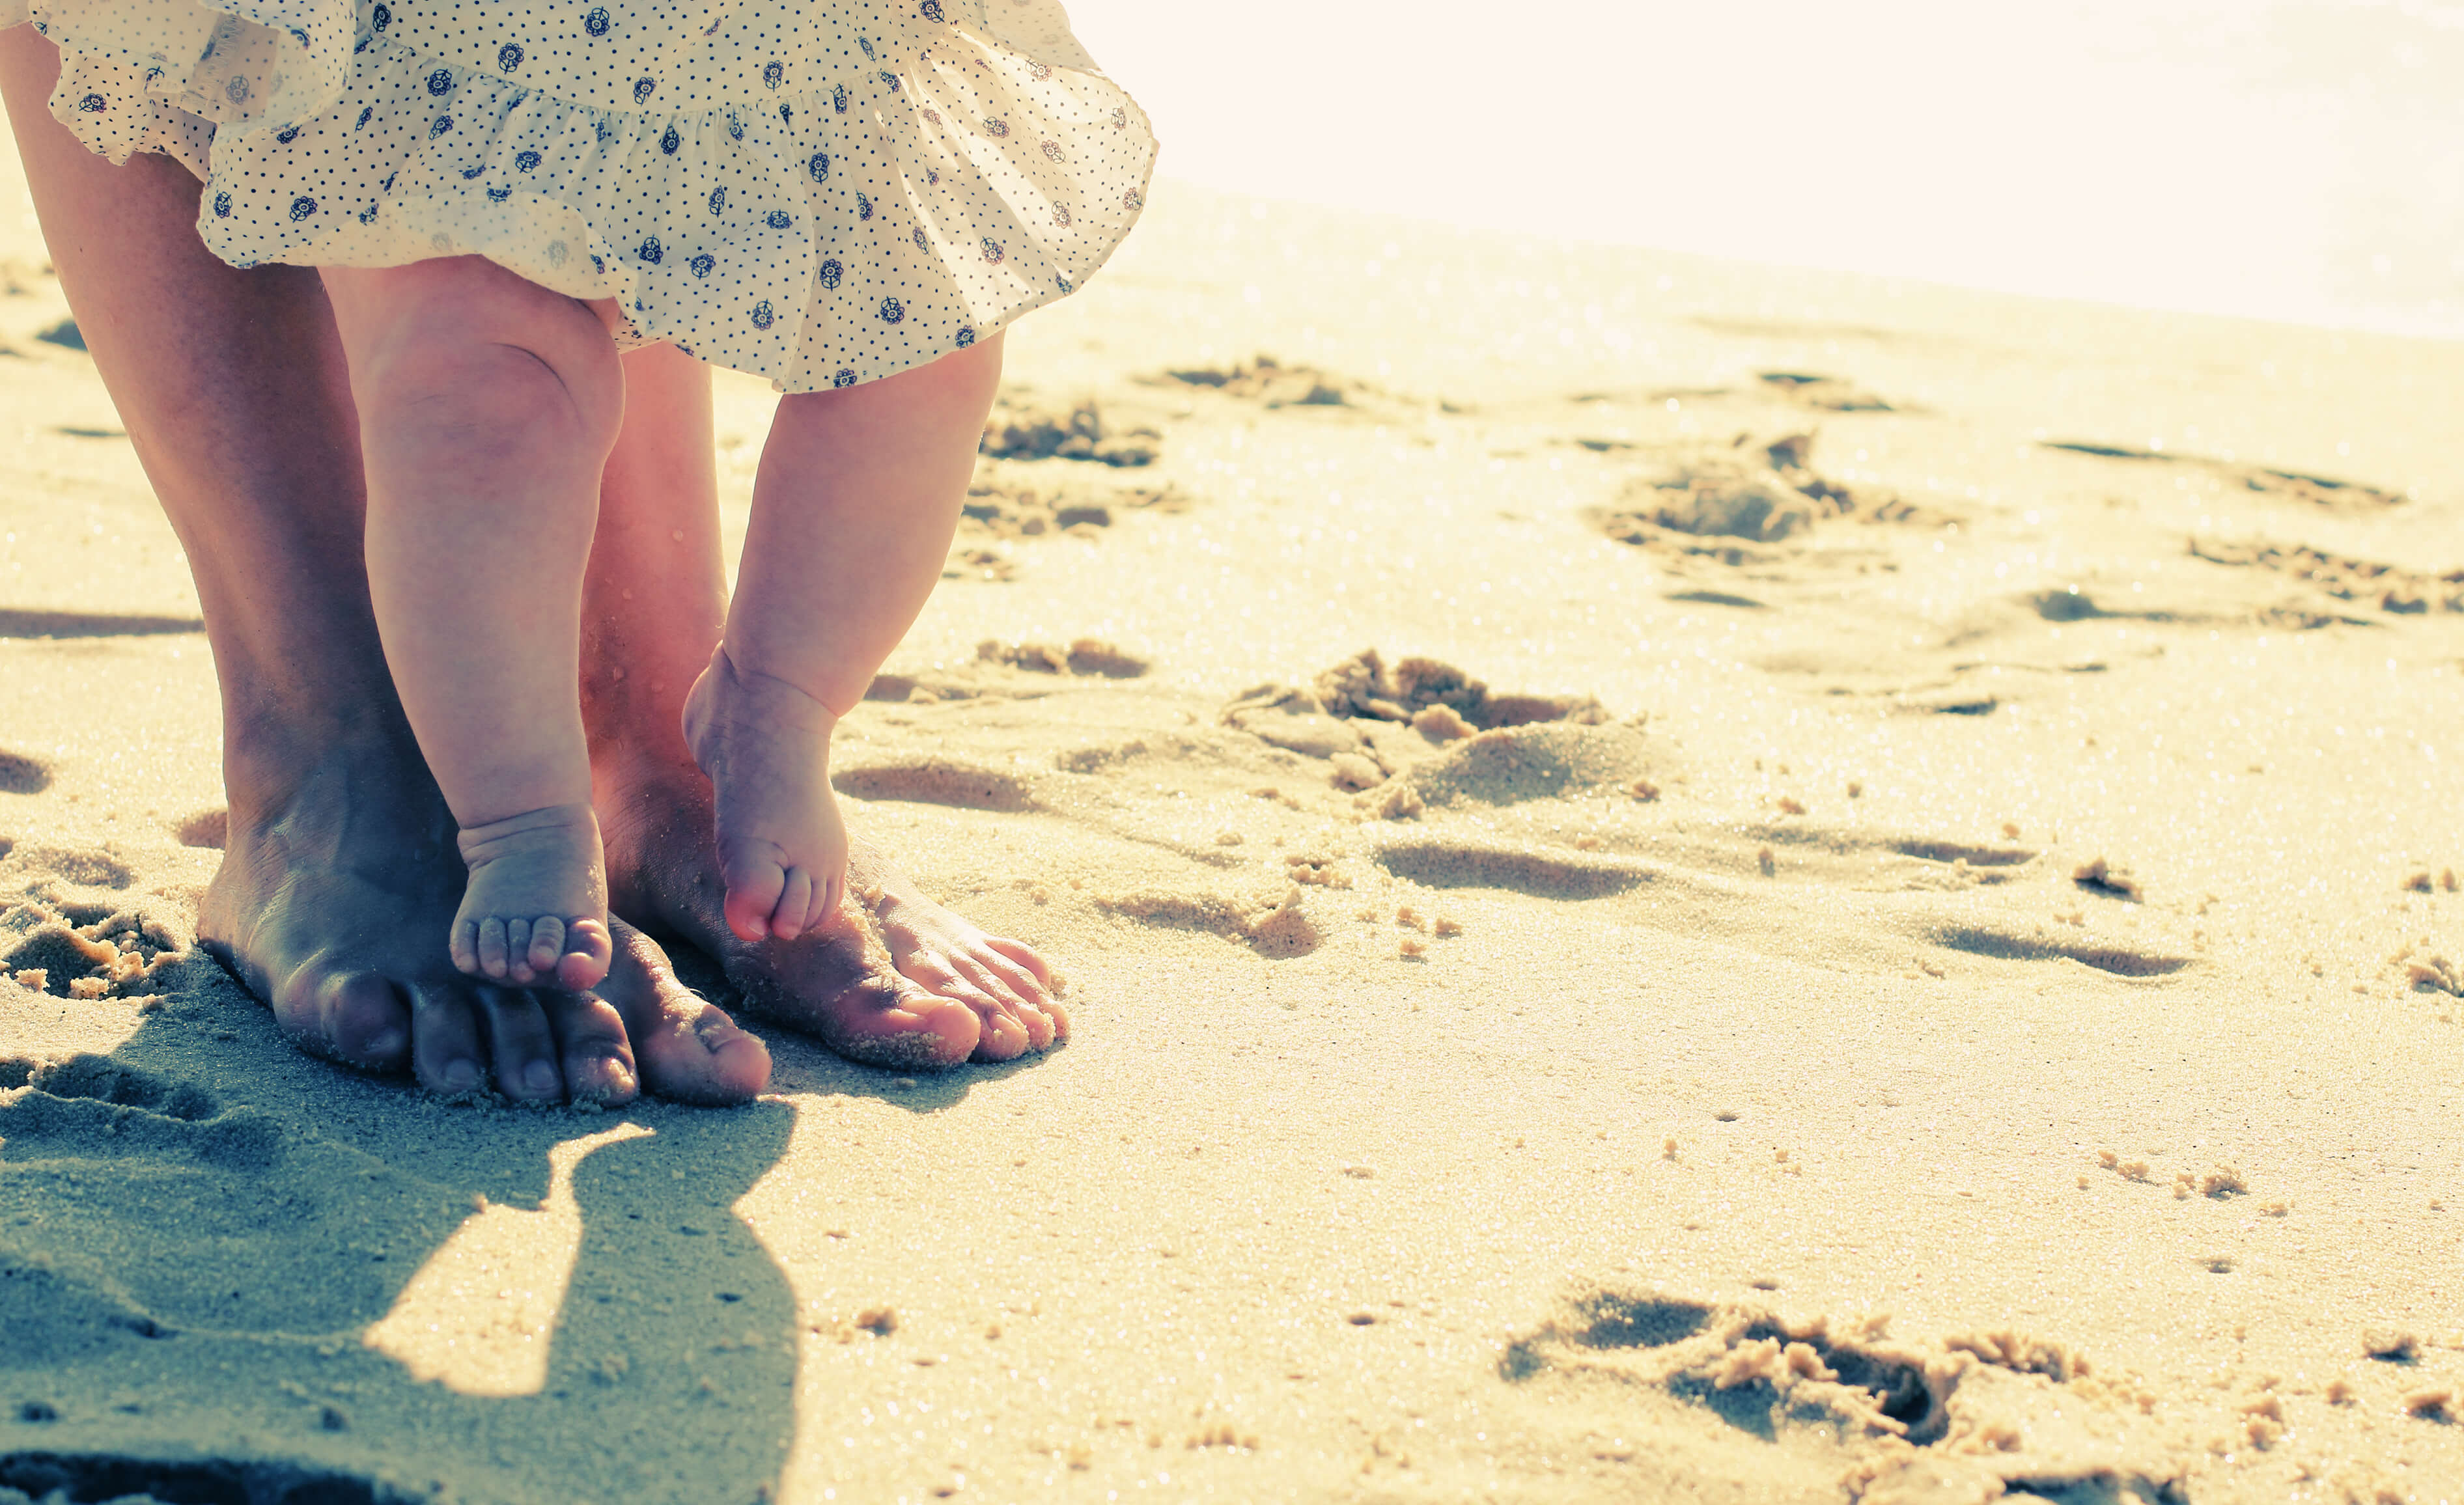 Does My Baby Even Need Shoes? A Case for and Against Going Barefoot